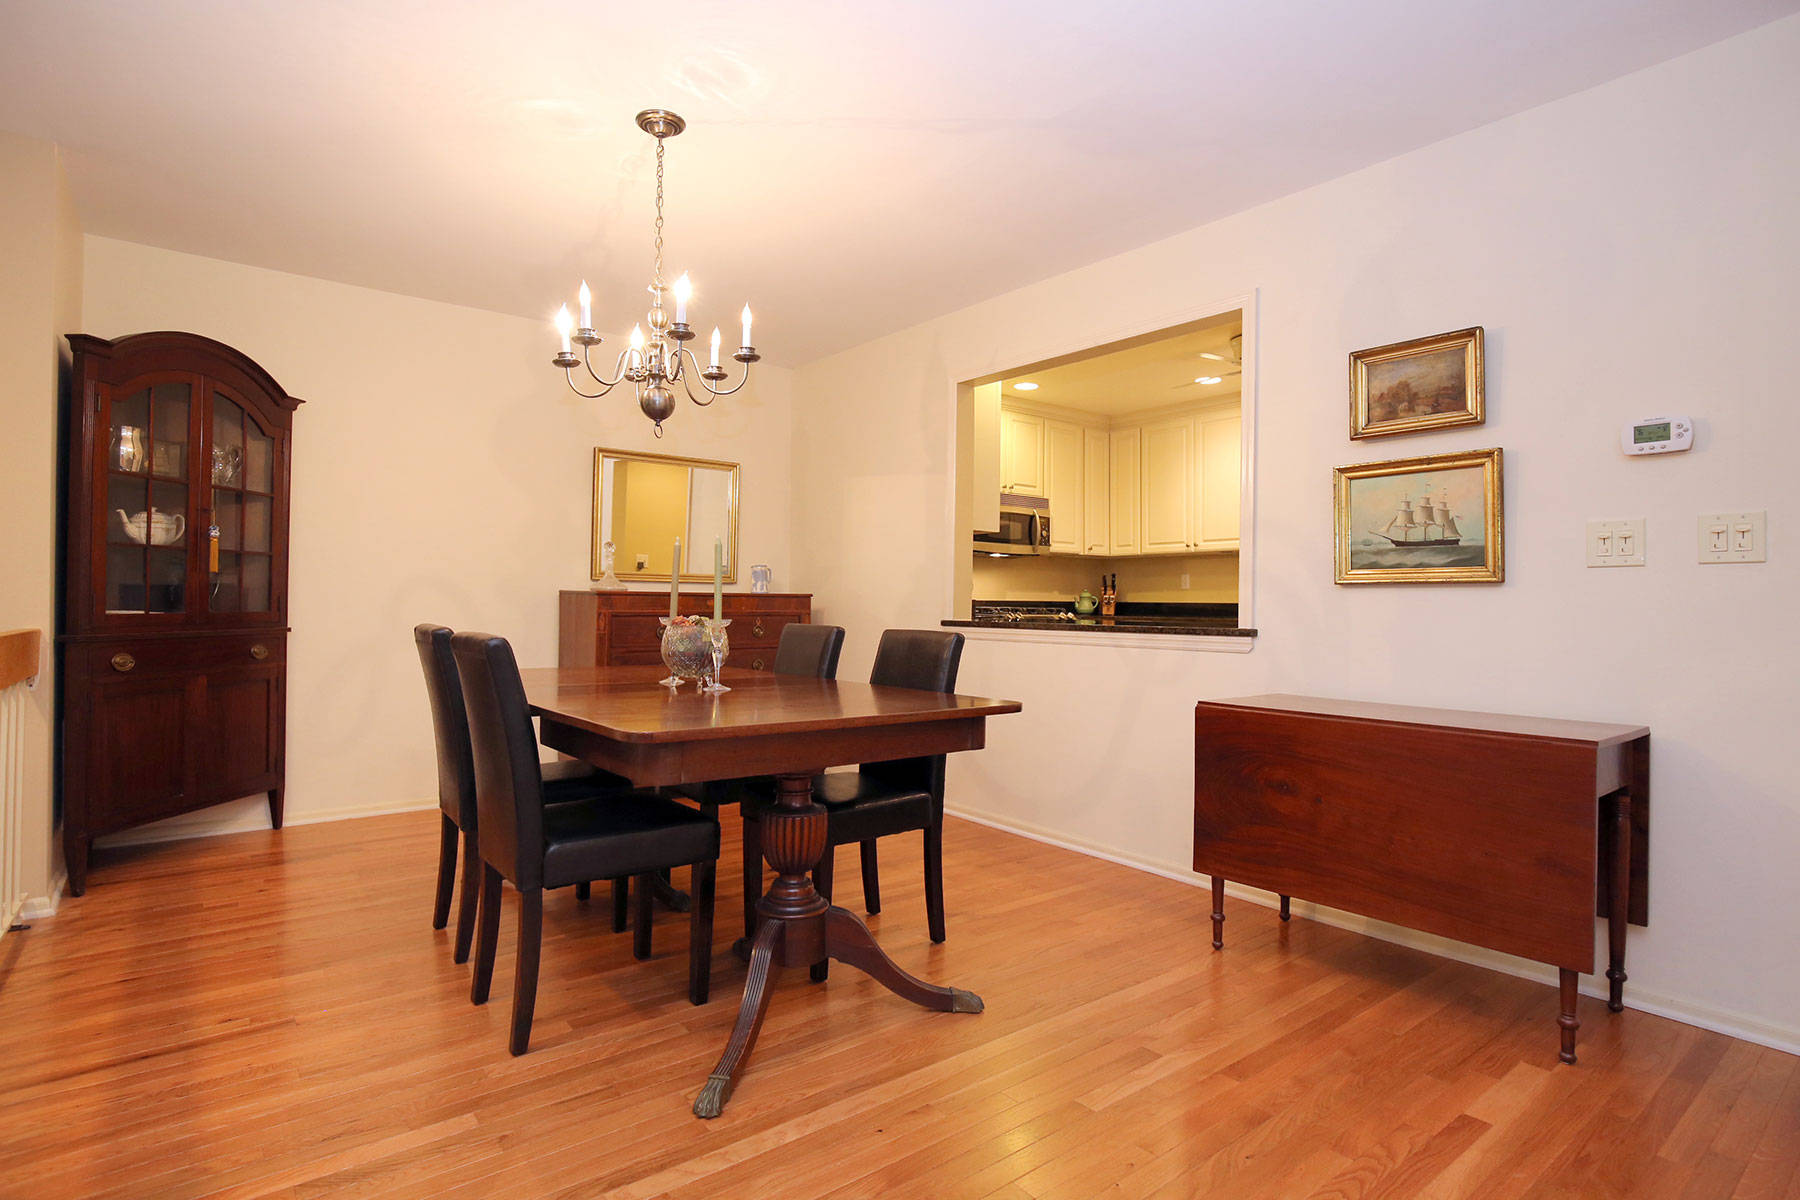 New Listing In Sutton Woods Chatham Nj Condo For Sal